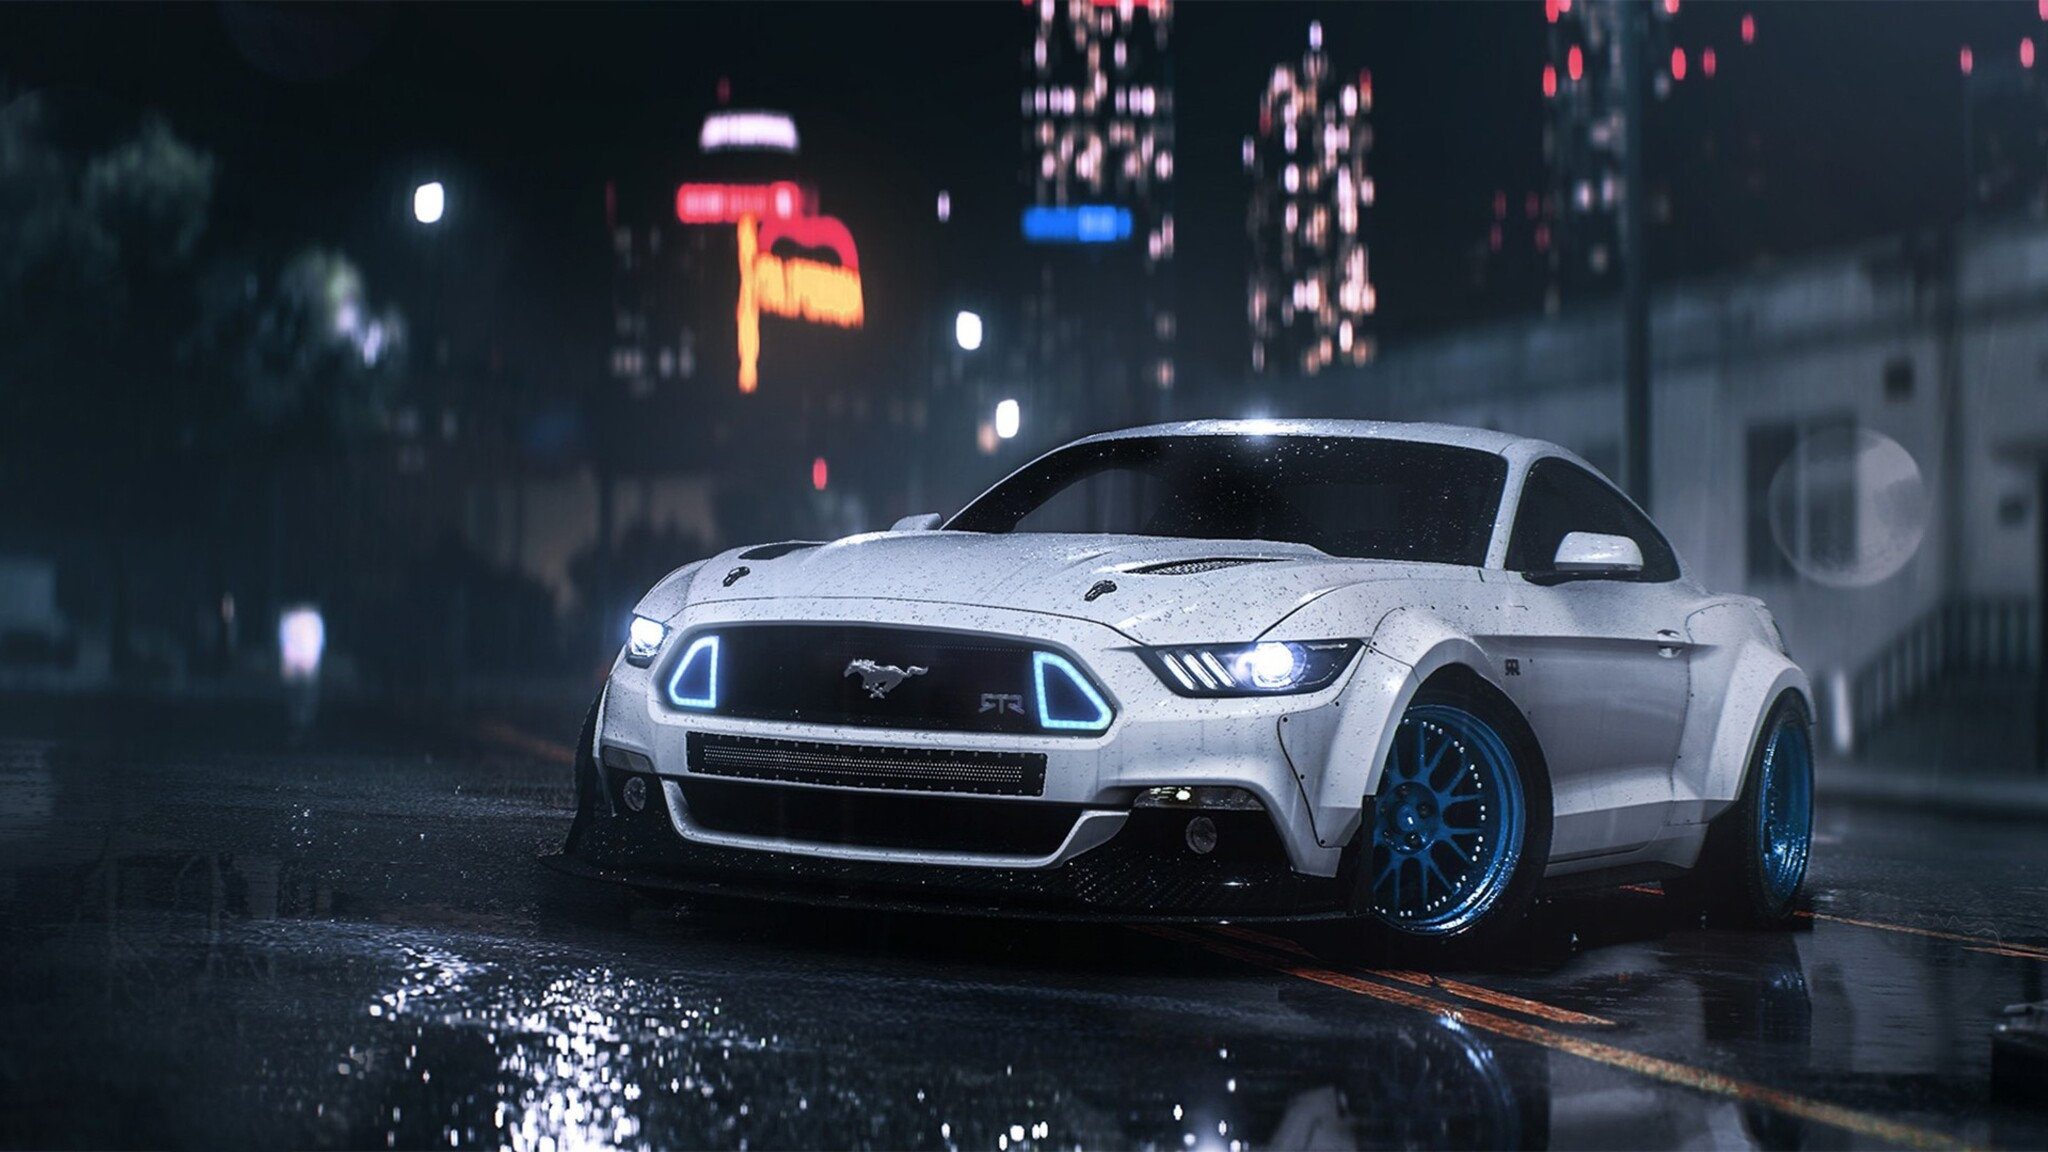 2048x1152 Wallpaper Cute 2048x1152 Need For Speed Mustang 2048x1152 Resolution Hd